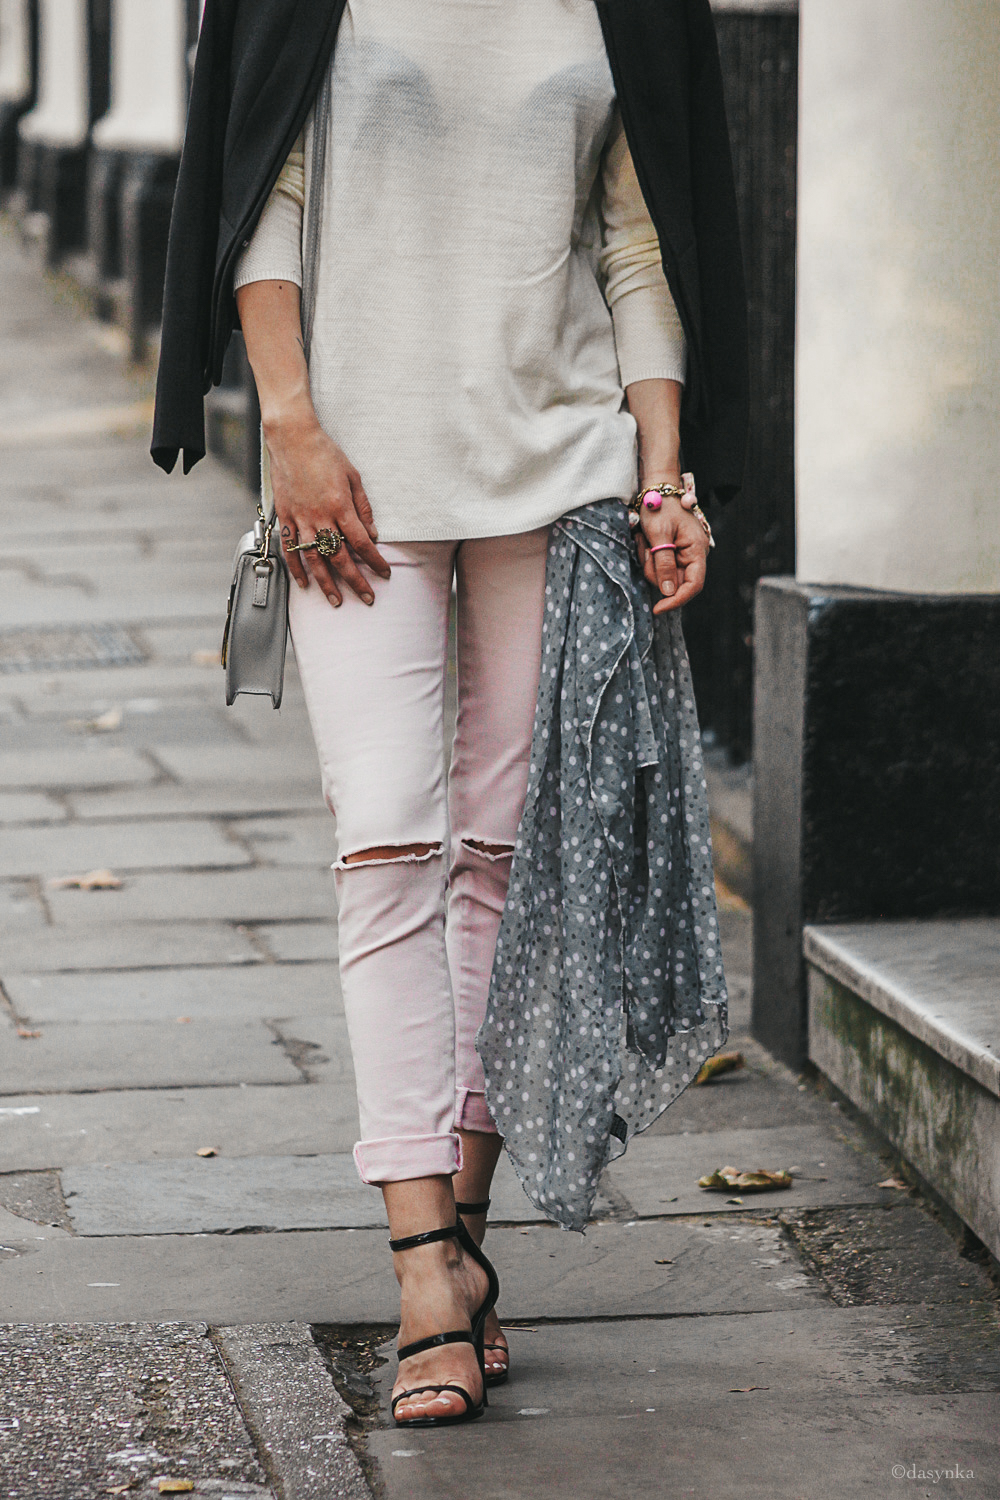 dasynka-fashion-blogger-london-street-style-scarf-bag-heels